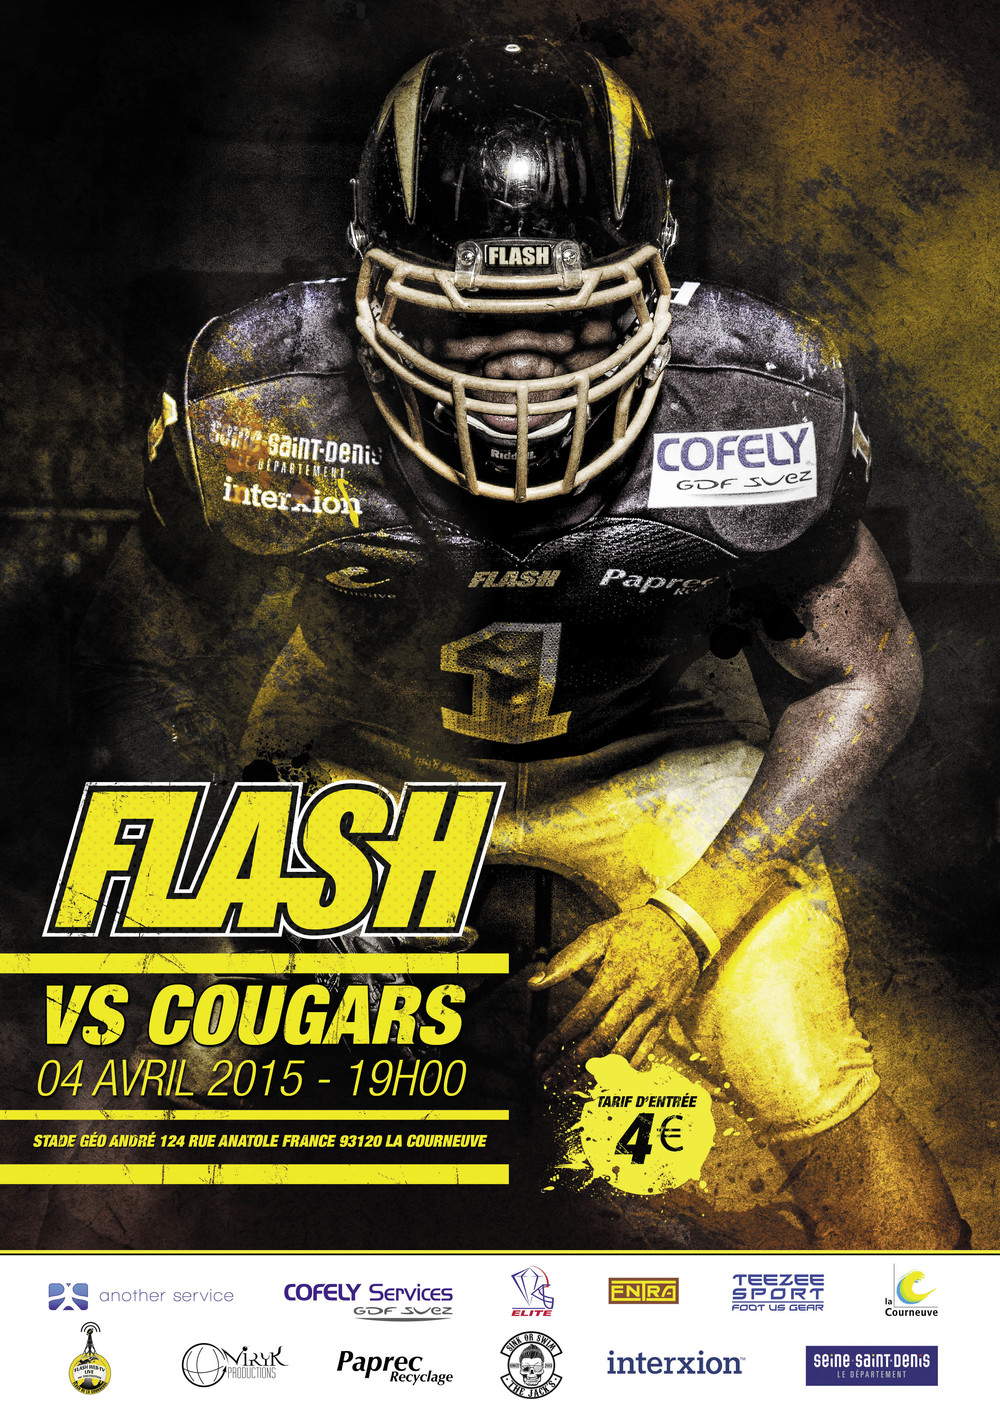 FLASH 2015 Football Season Poster